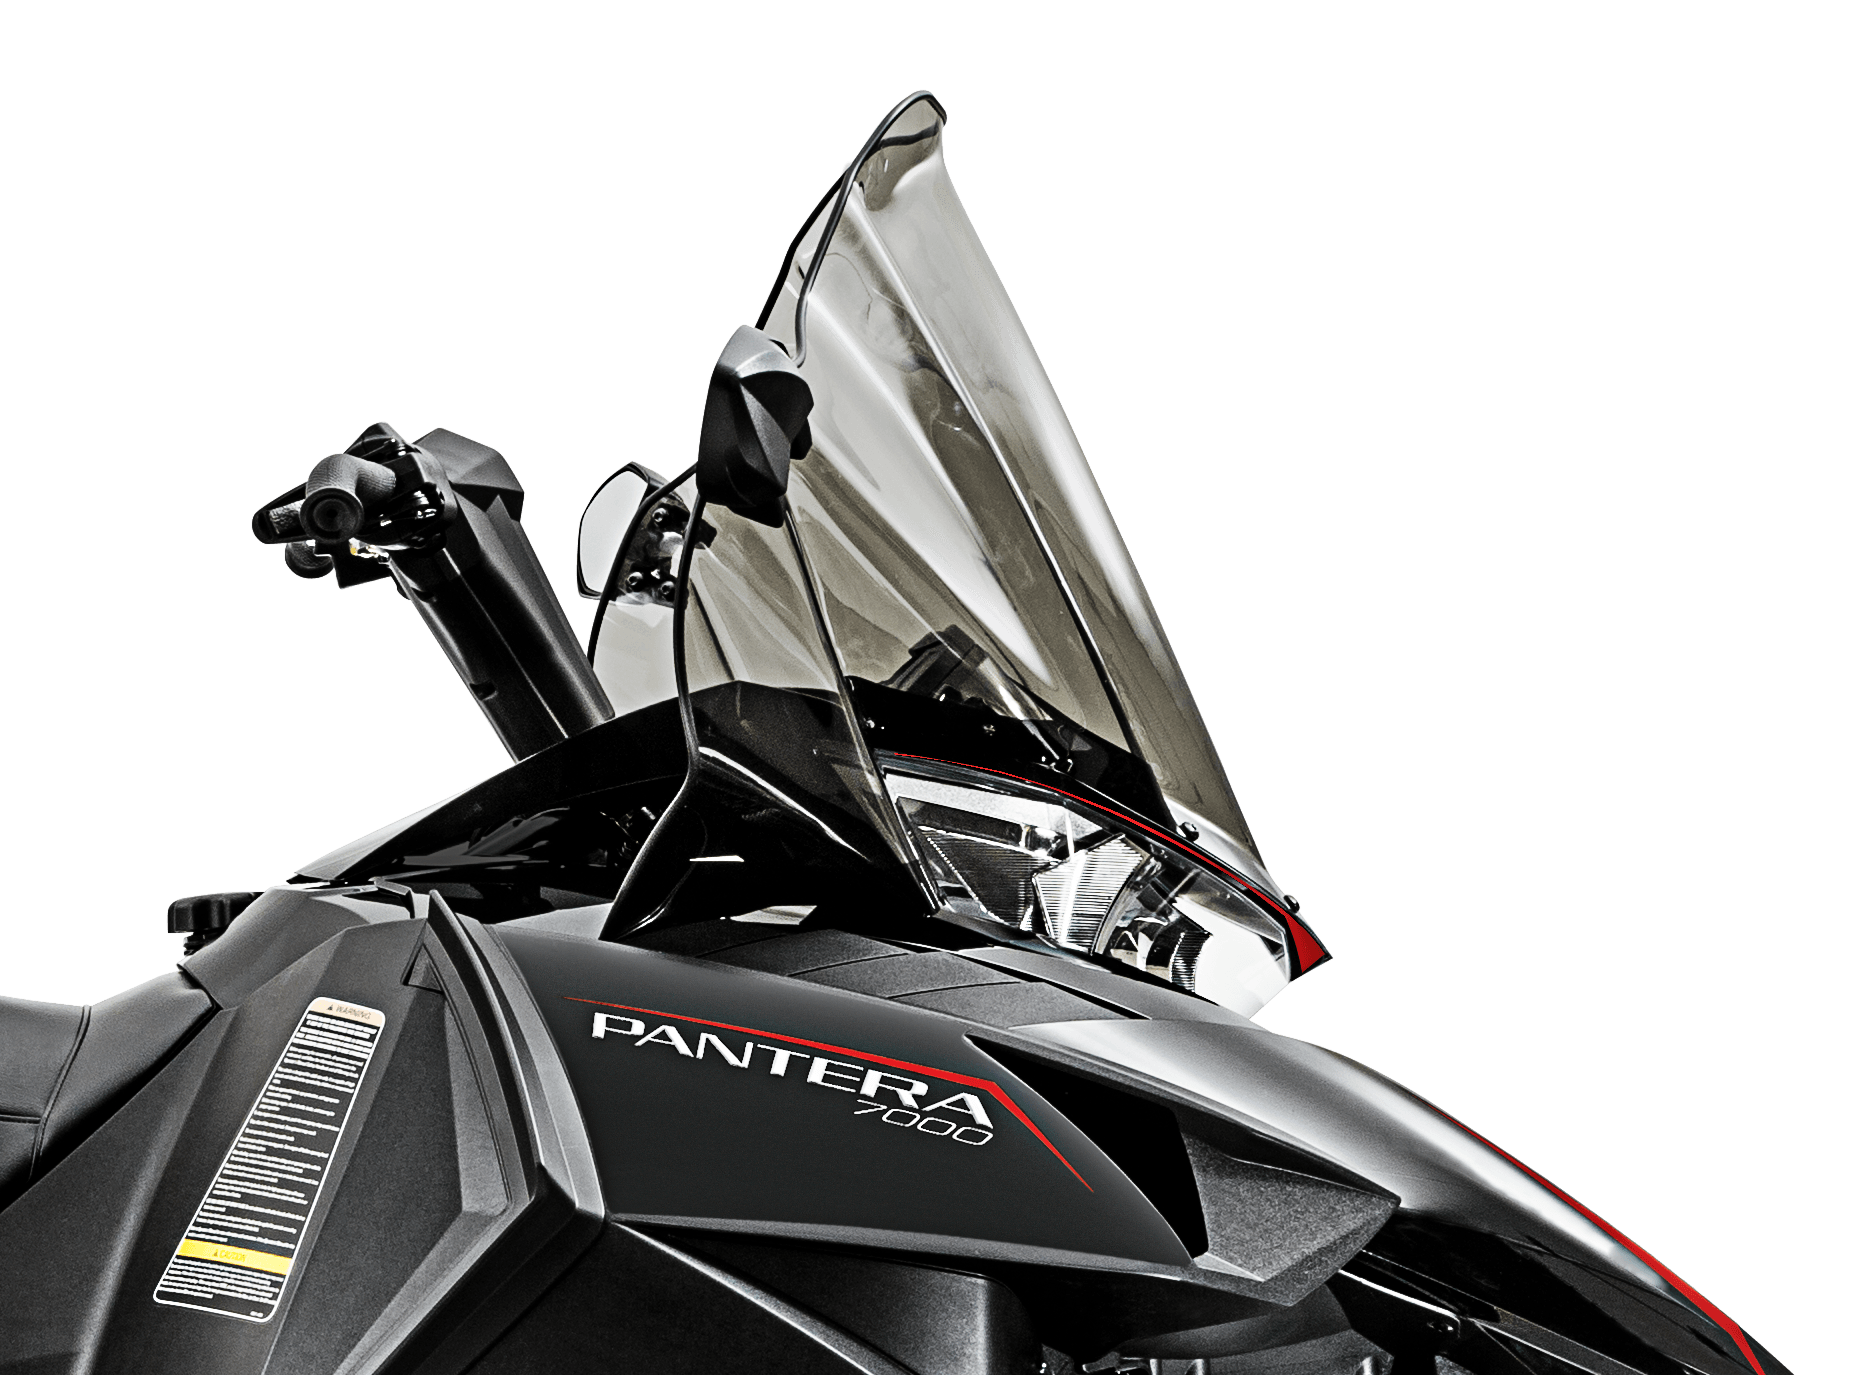 2016 Arctic Cat Pantera 7000 in Roscoe, Illinois - Photo 5